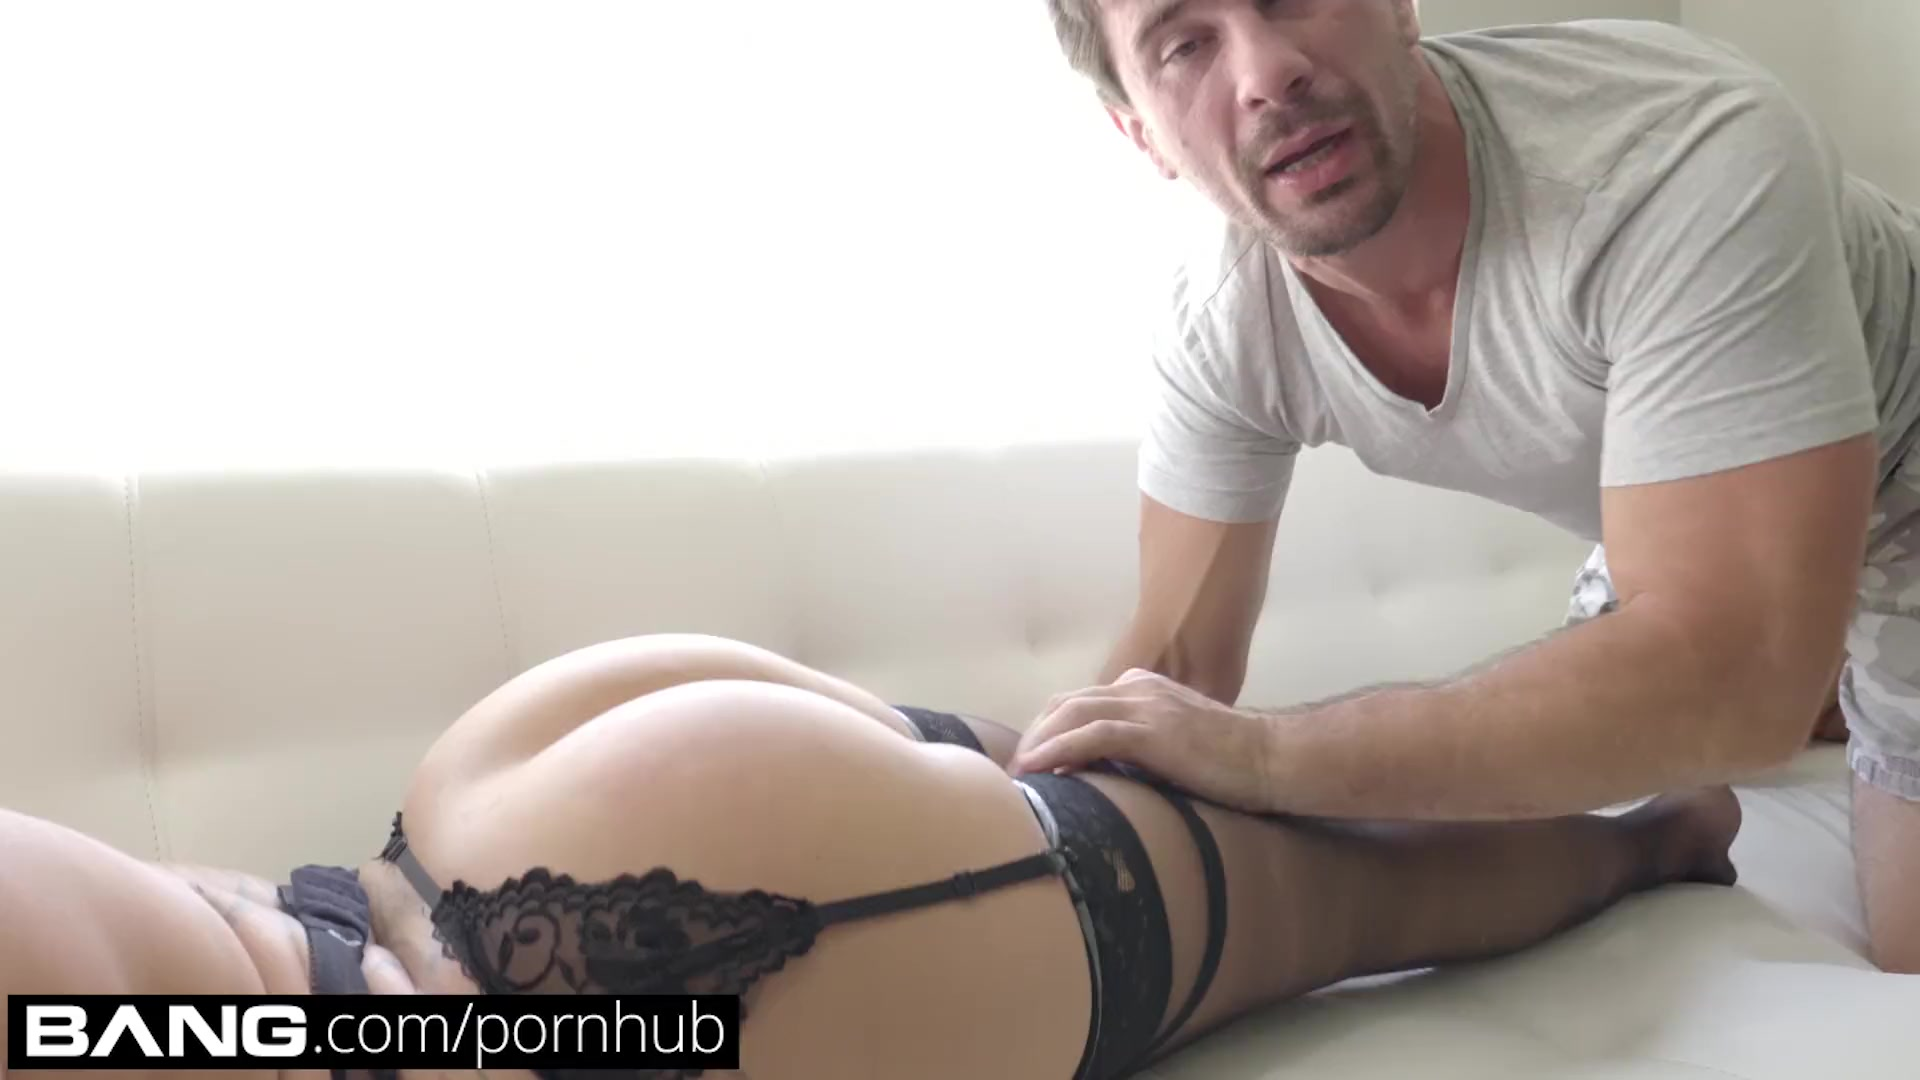 Preview 3 of Bang Gonzo: Tattooed Vixen Nina Kayy Gets Her Asshole Stretched